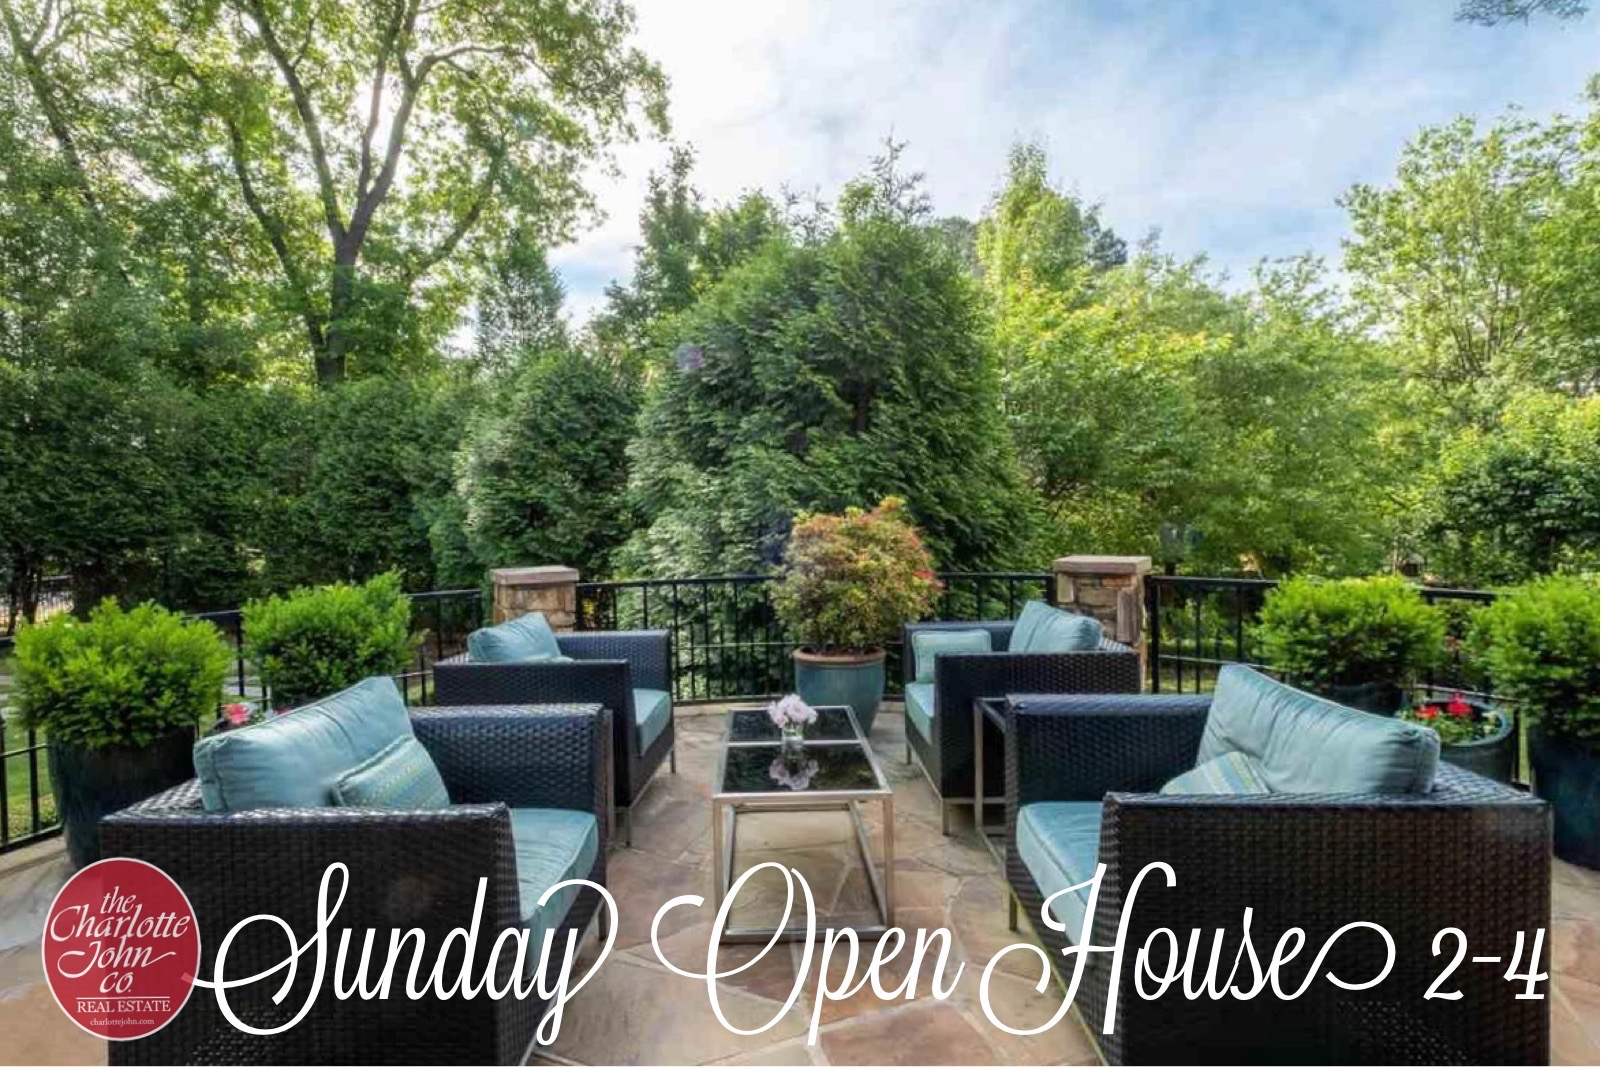 Super Bowl Sunday Open House